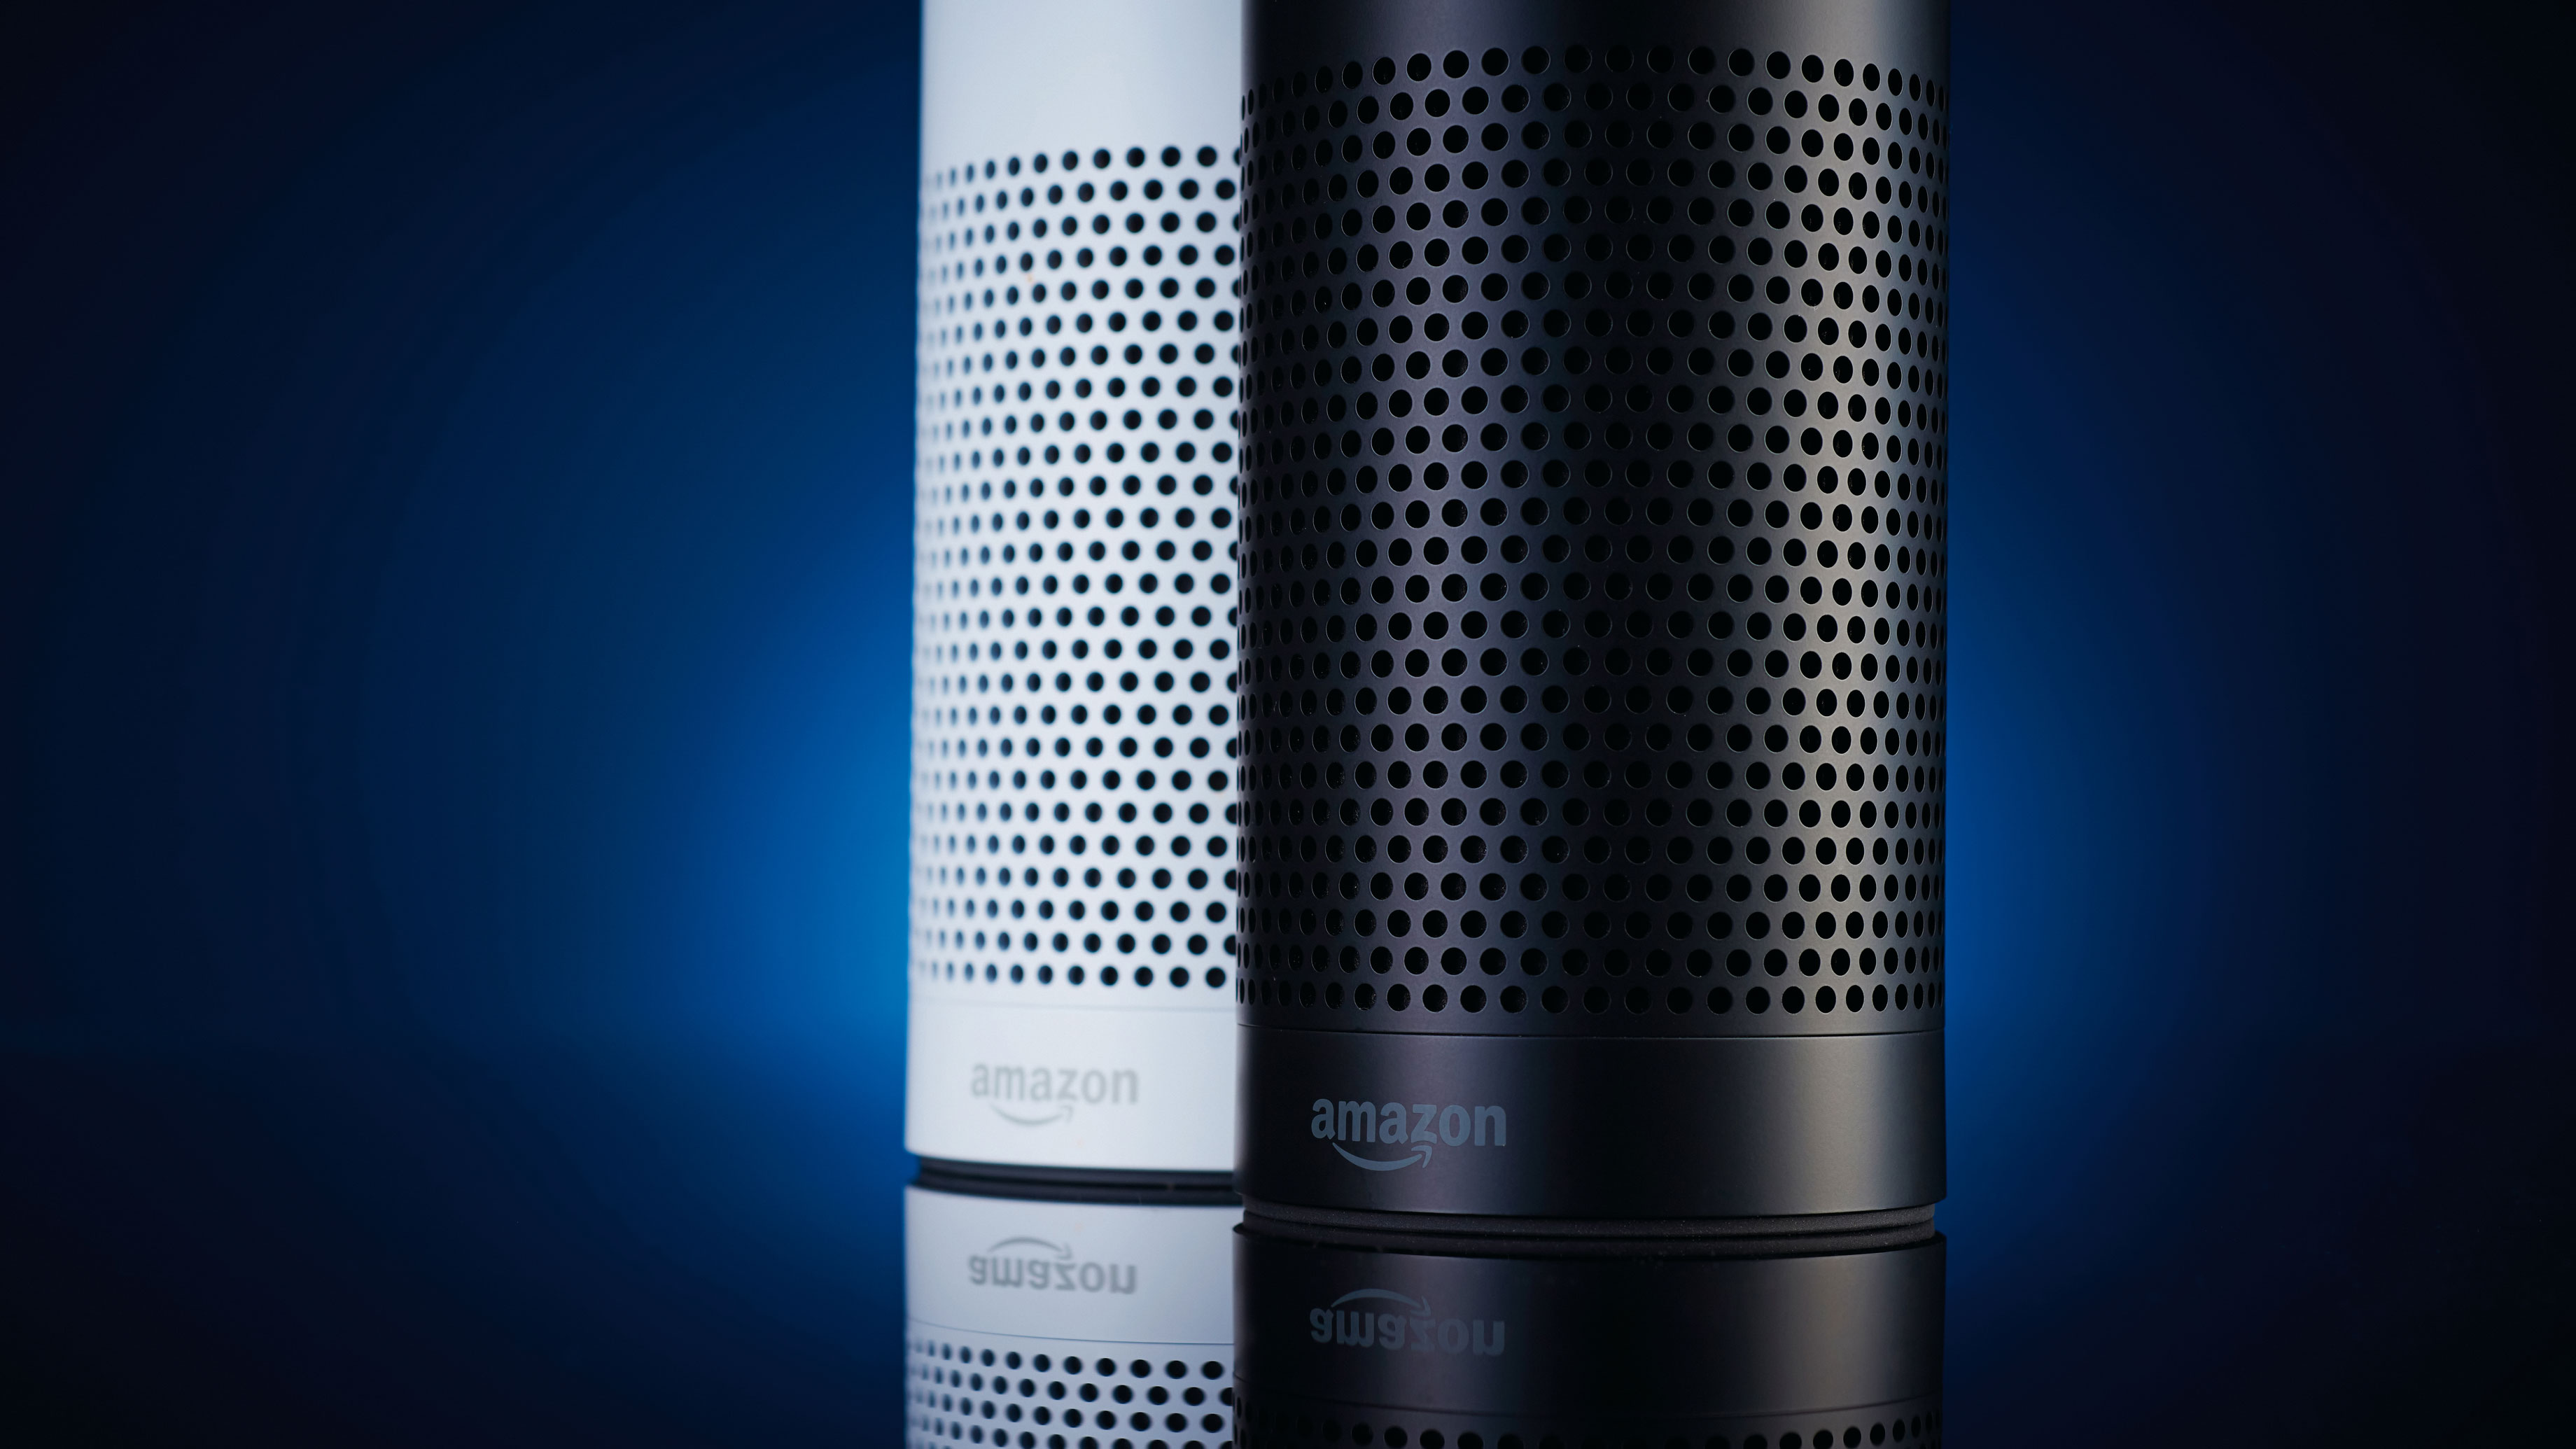 You can now play your music across multiple Echo devices